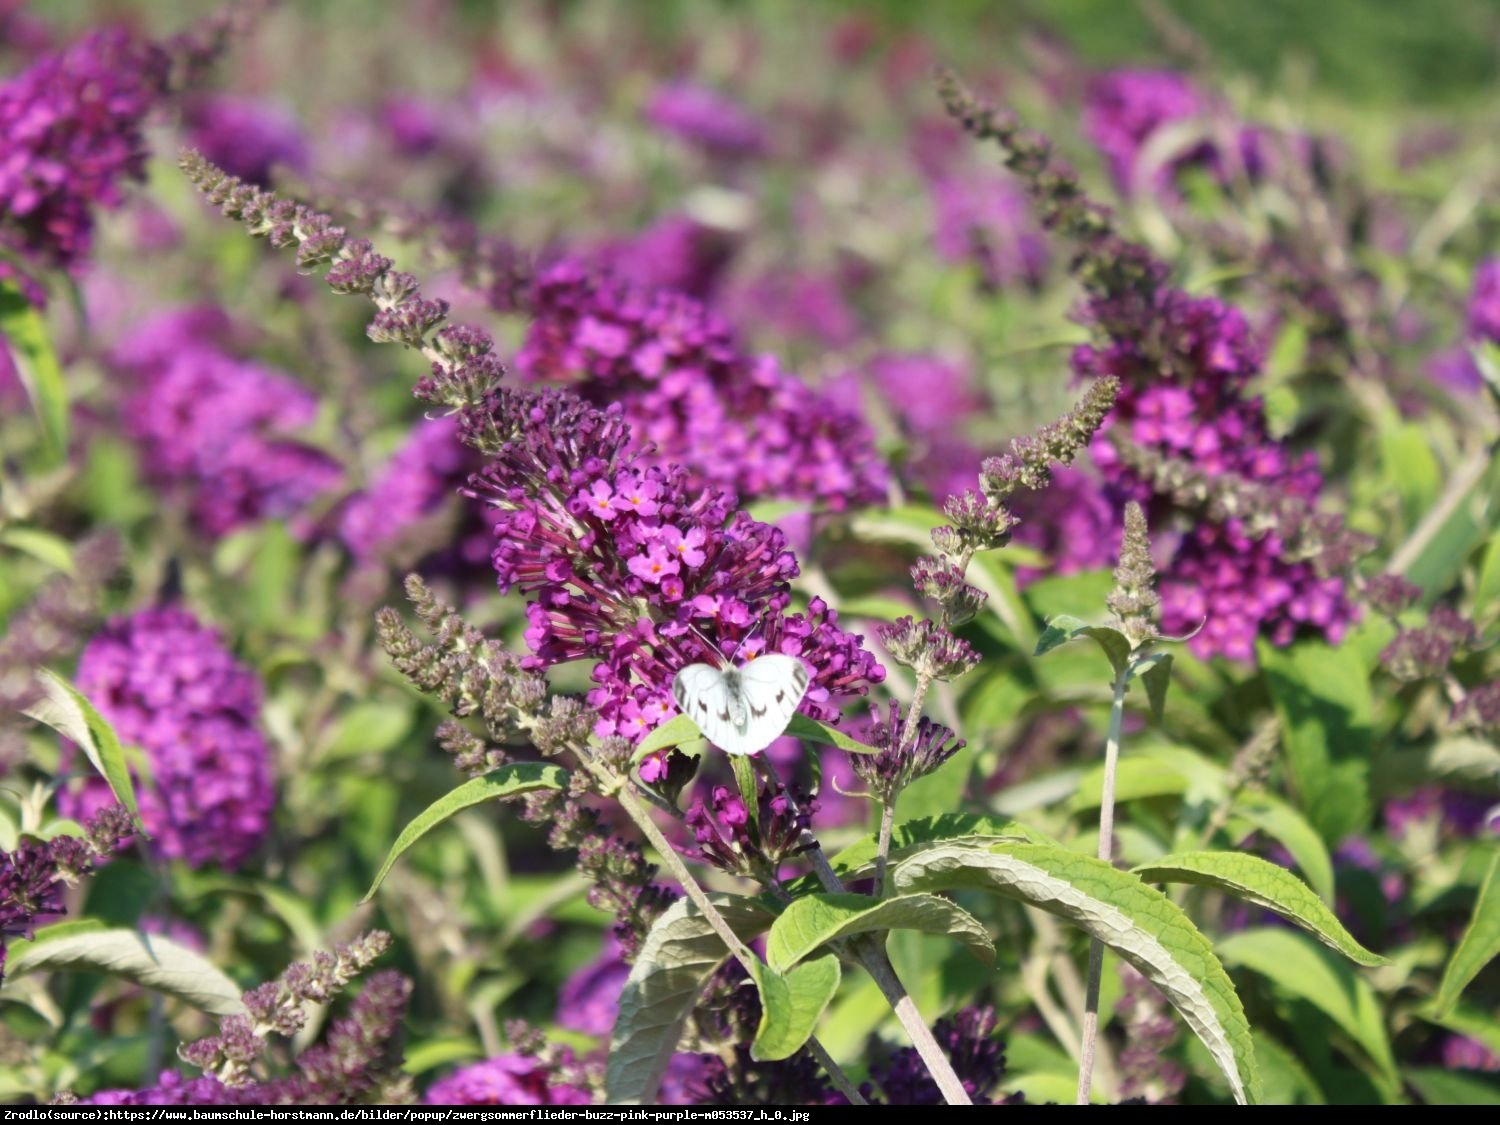 Budleja Buzz pink purple - Buddleja buzz pink purple